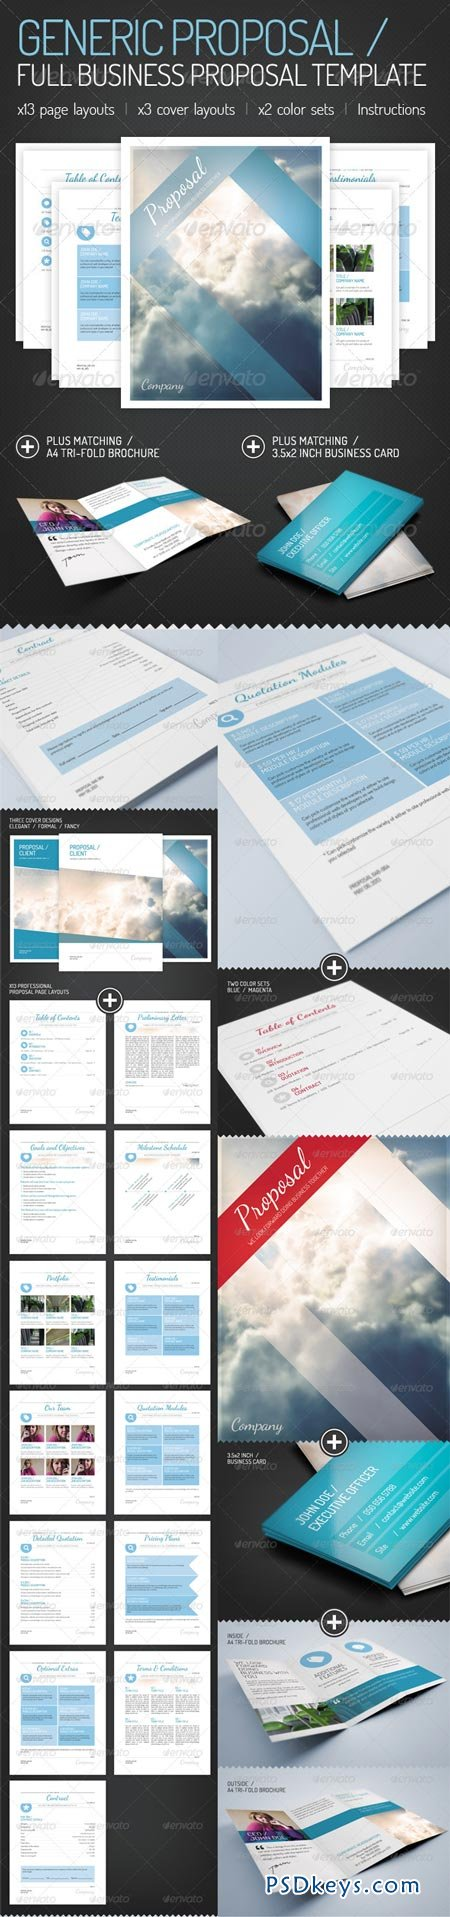 Generic Proposal   Full Business Proposal Template 2721064